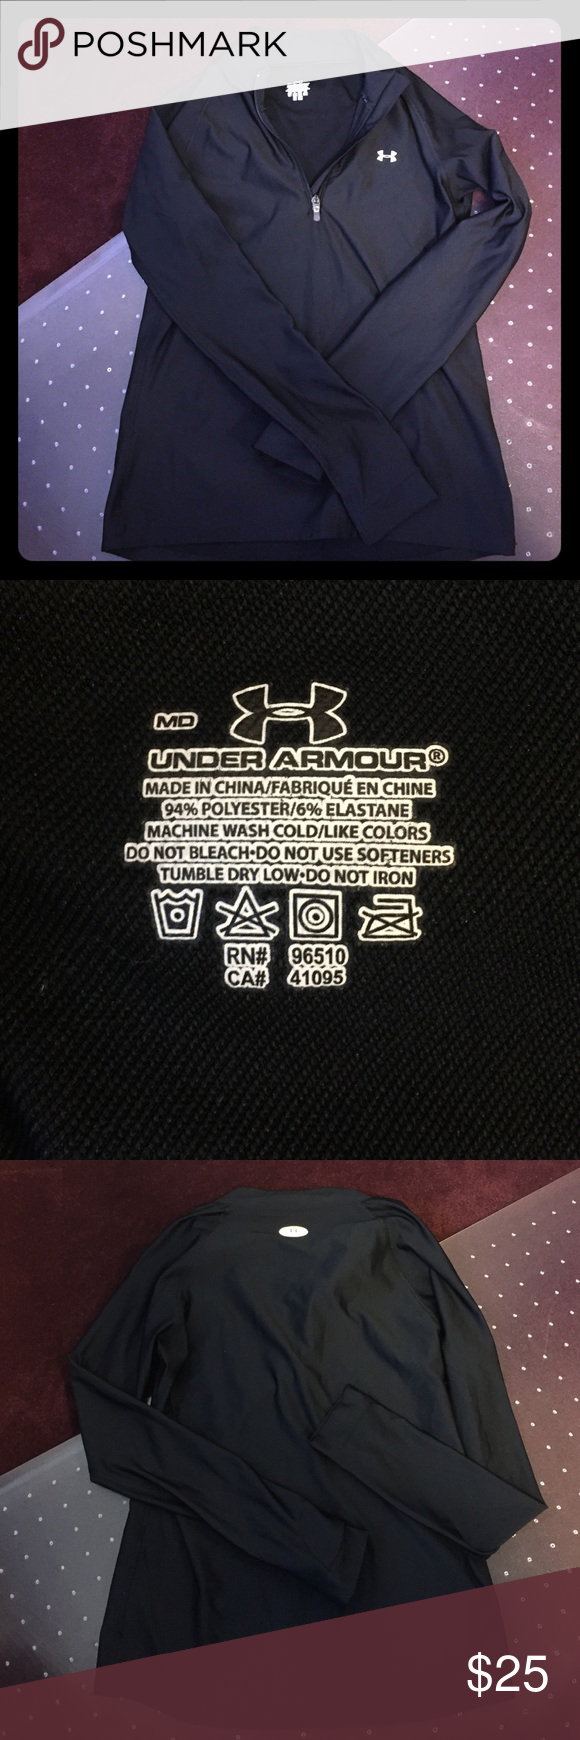 GREAT CONDITION UA 1/4 zip. Black in color. Size M UA Size M long sleeve 1/4 zip! This is more on the s/m side. It's definitely a slim fit cut. Great condition! Just doesn't fit. Light weight but still cozy! Under Armour Tops Sweatshirts & Hoodies